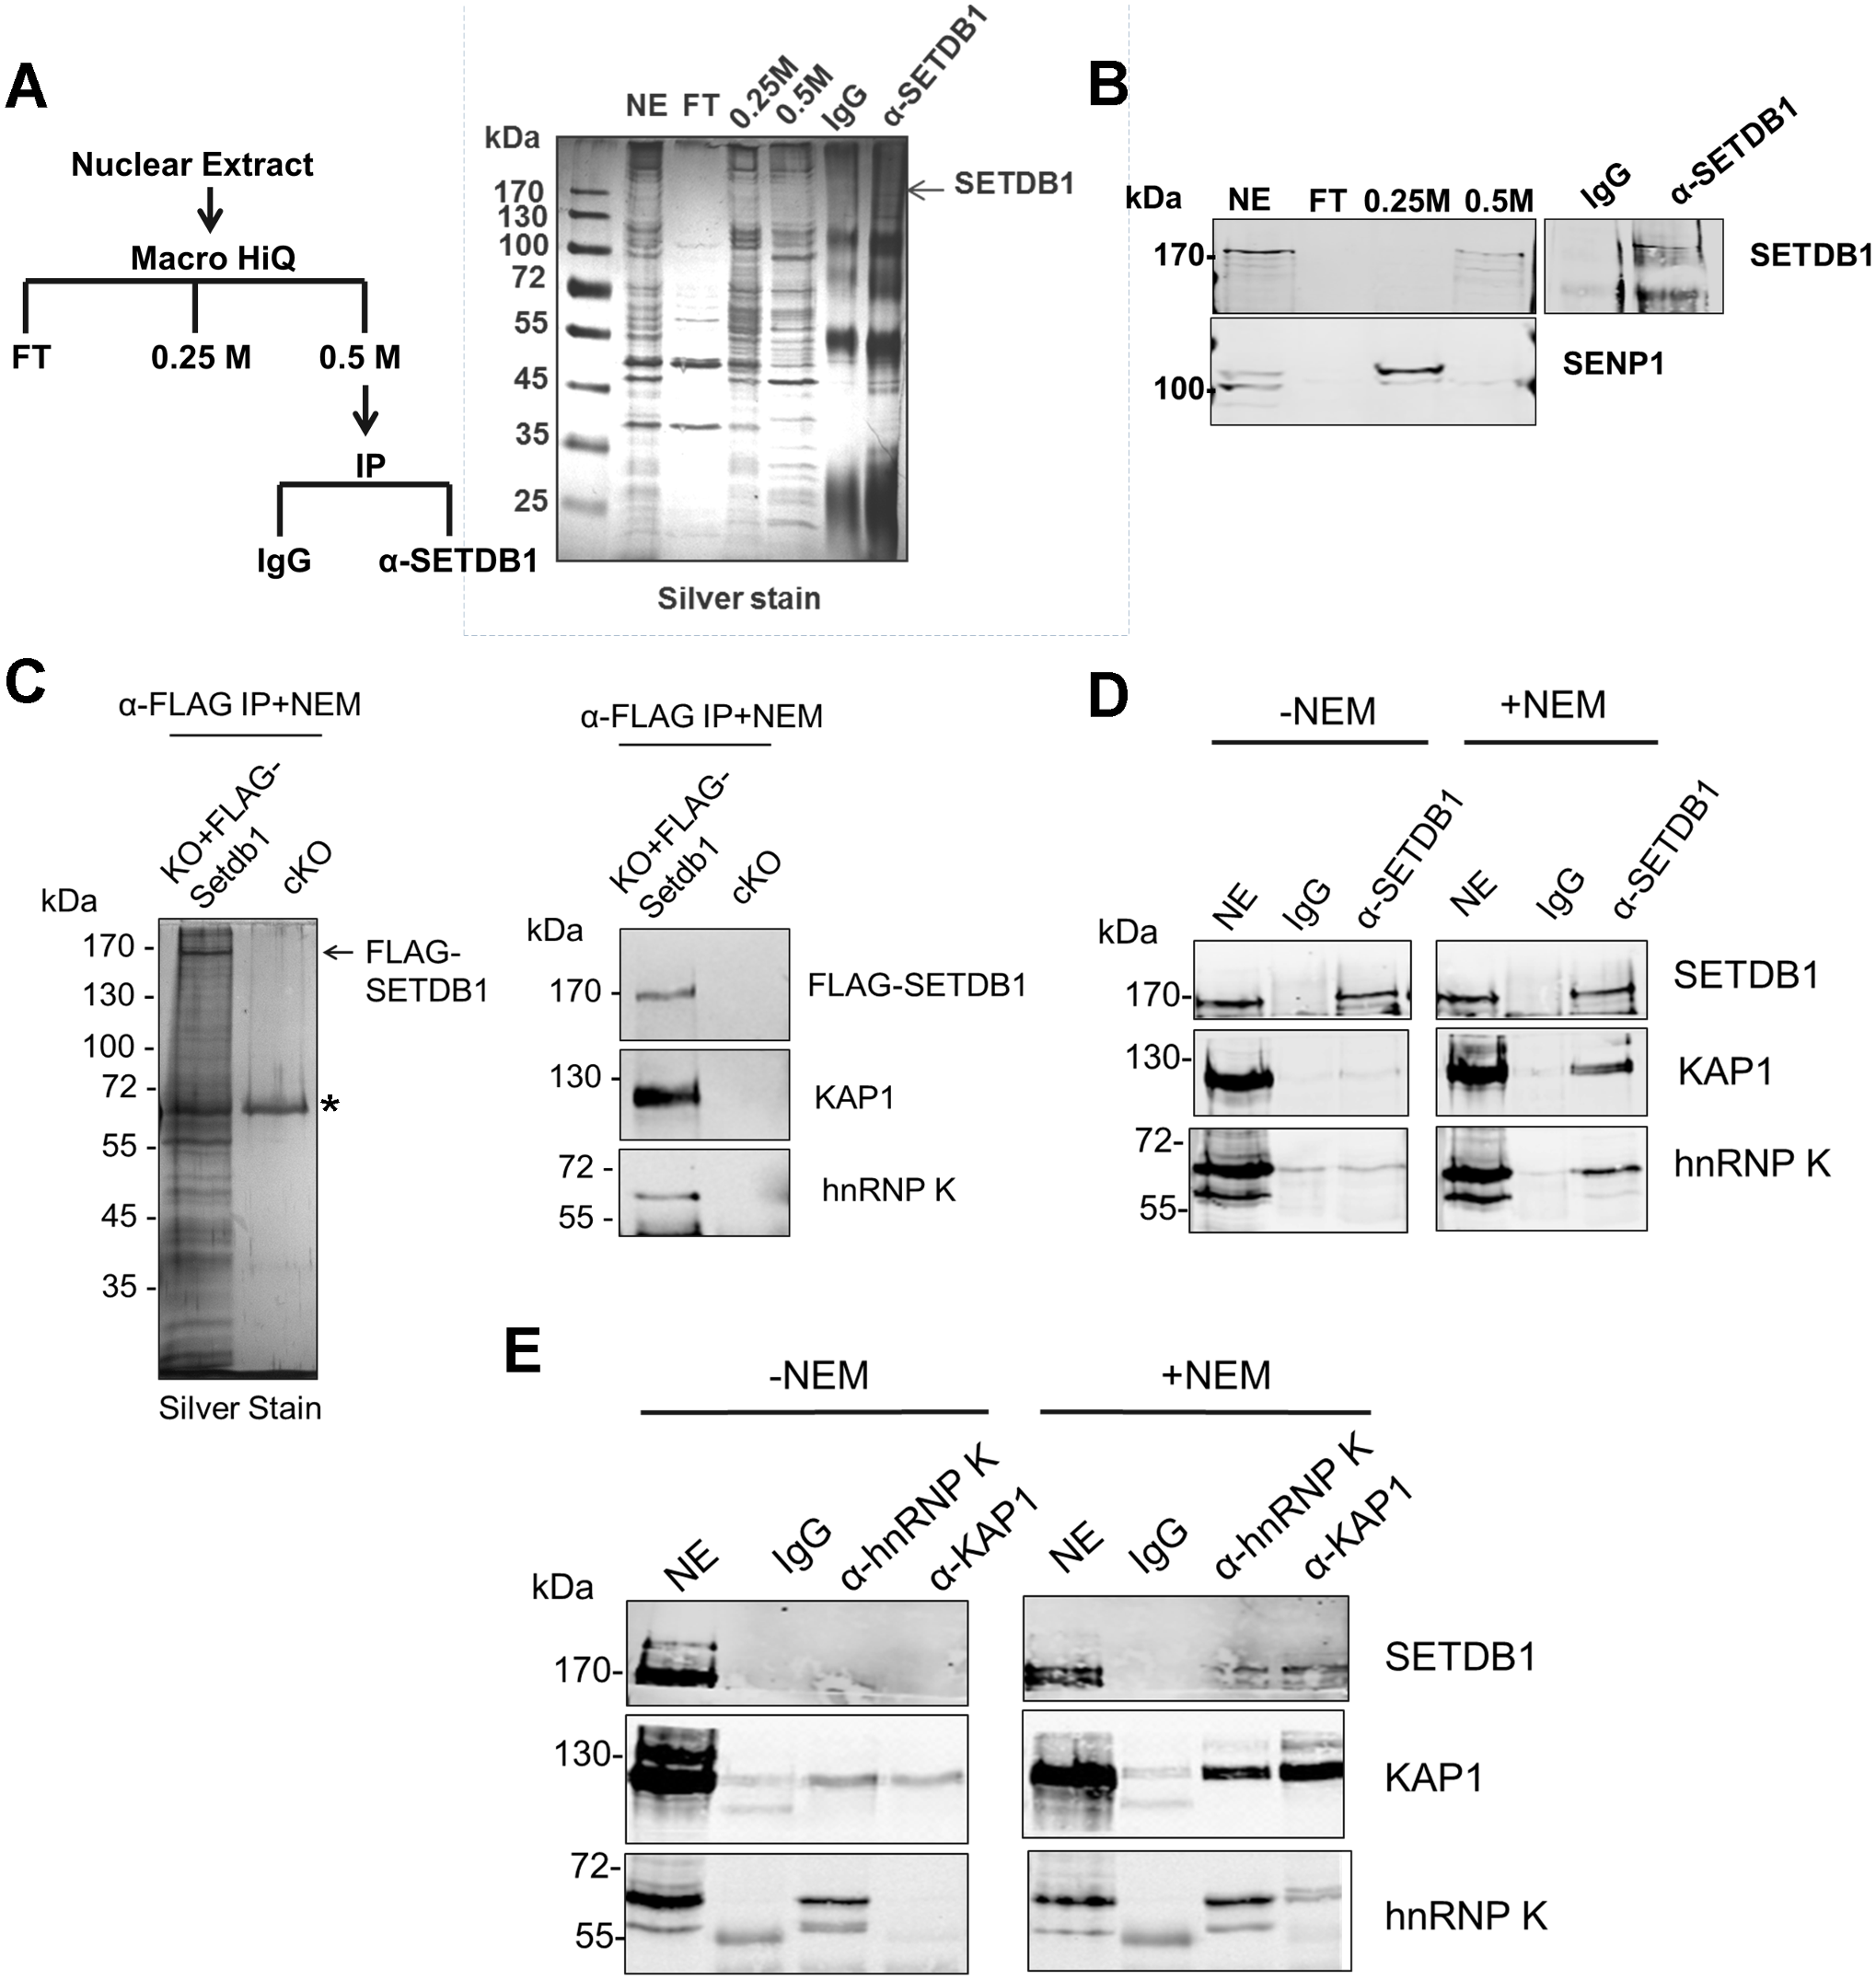 hnRNP K is associated with SETDB1 and KAP1 in mESCs.